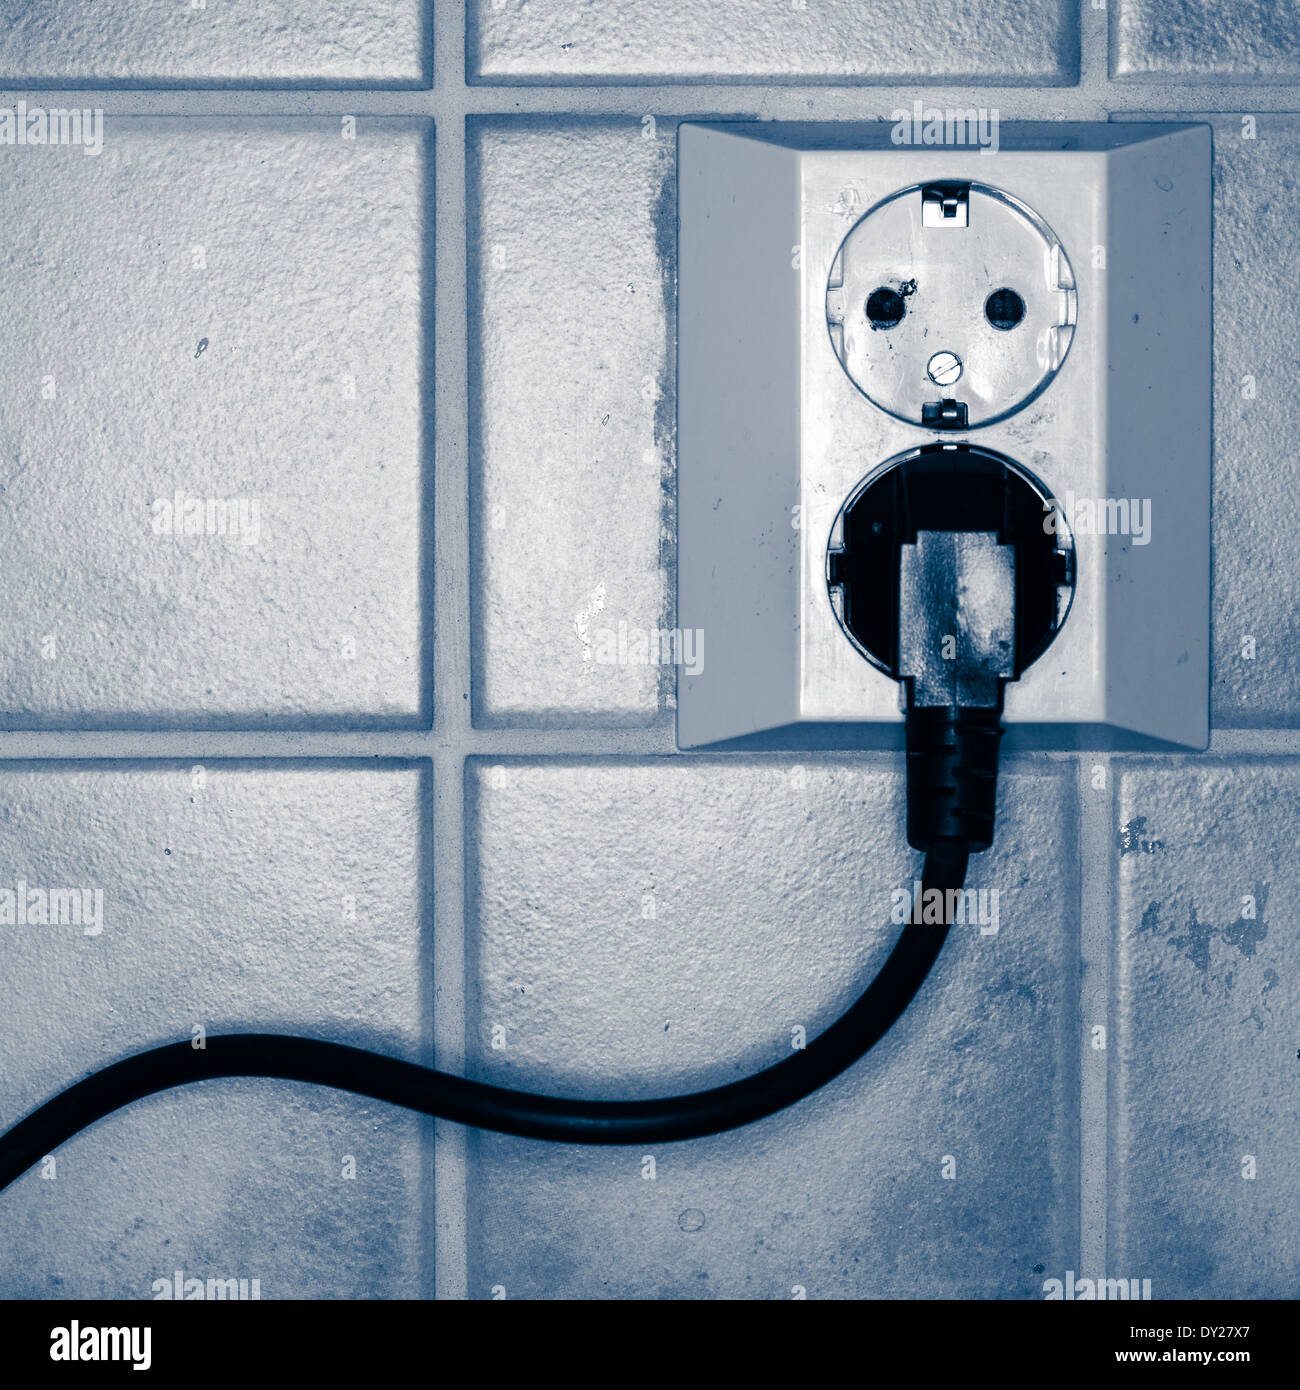 Plugged power cord in wall socket, tinted black and white image - Stock Image